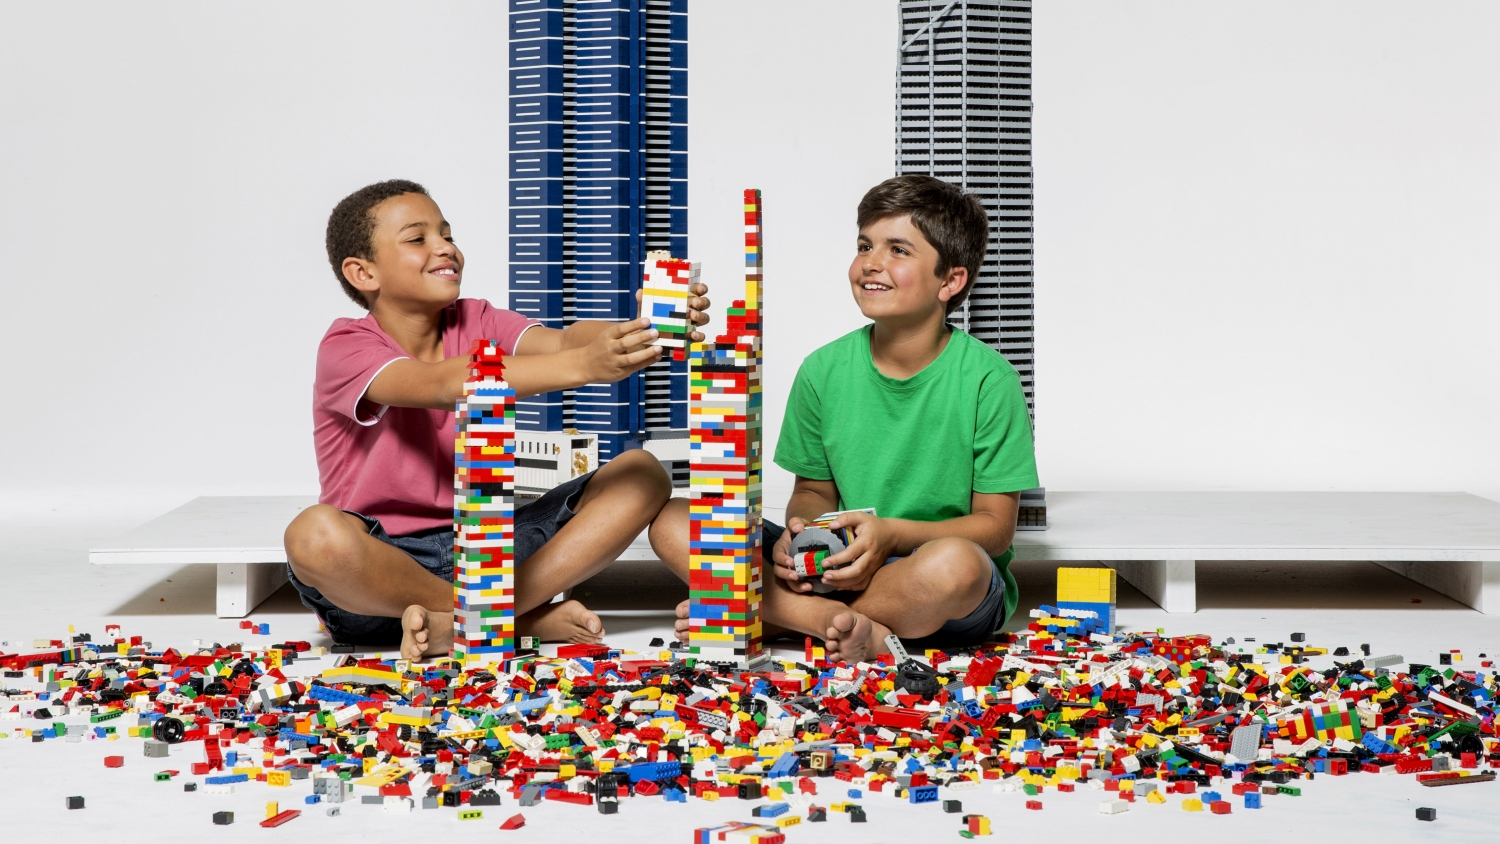 two young boys playing with colourful LEGO in front of large LEGO towers against a white background